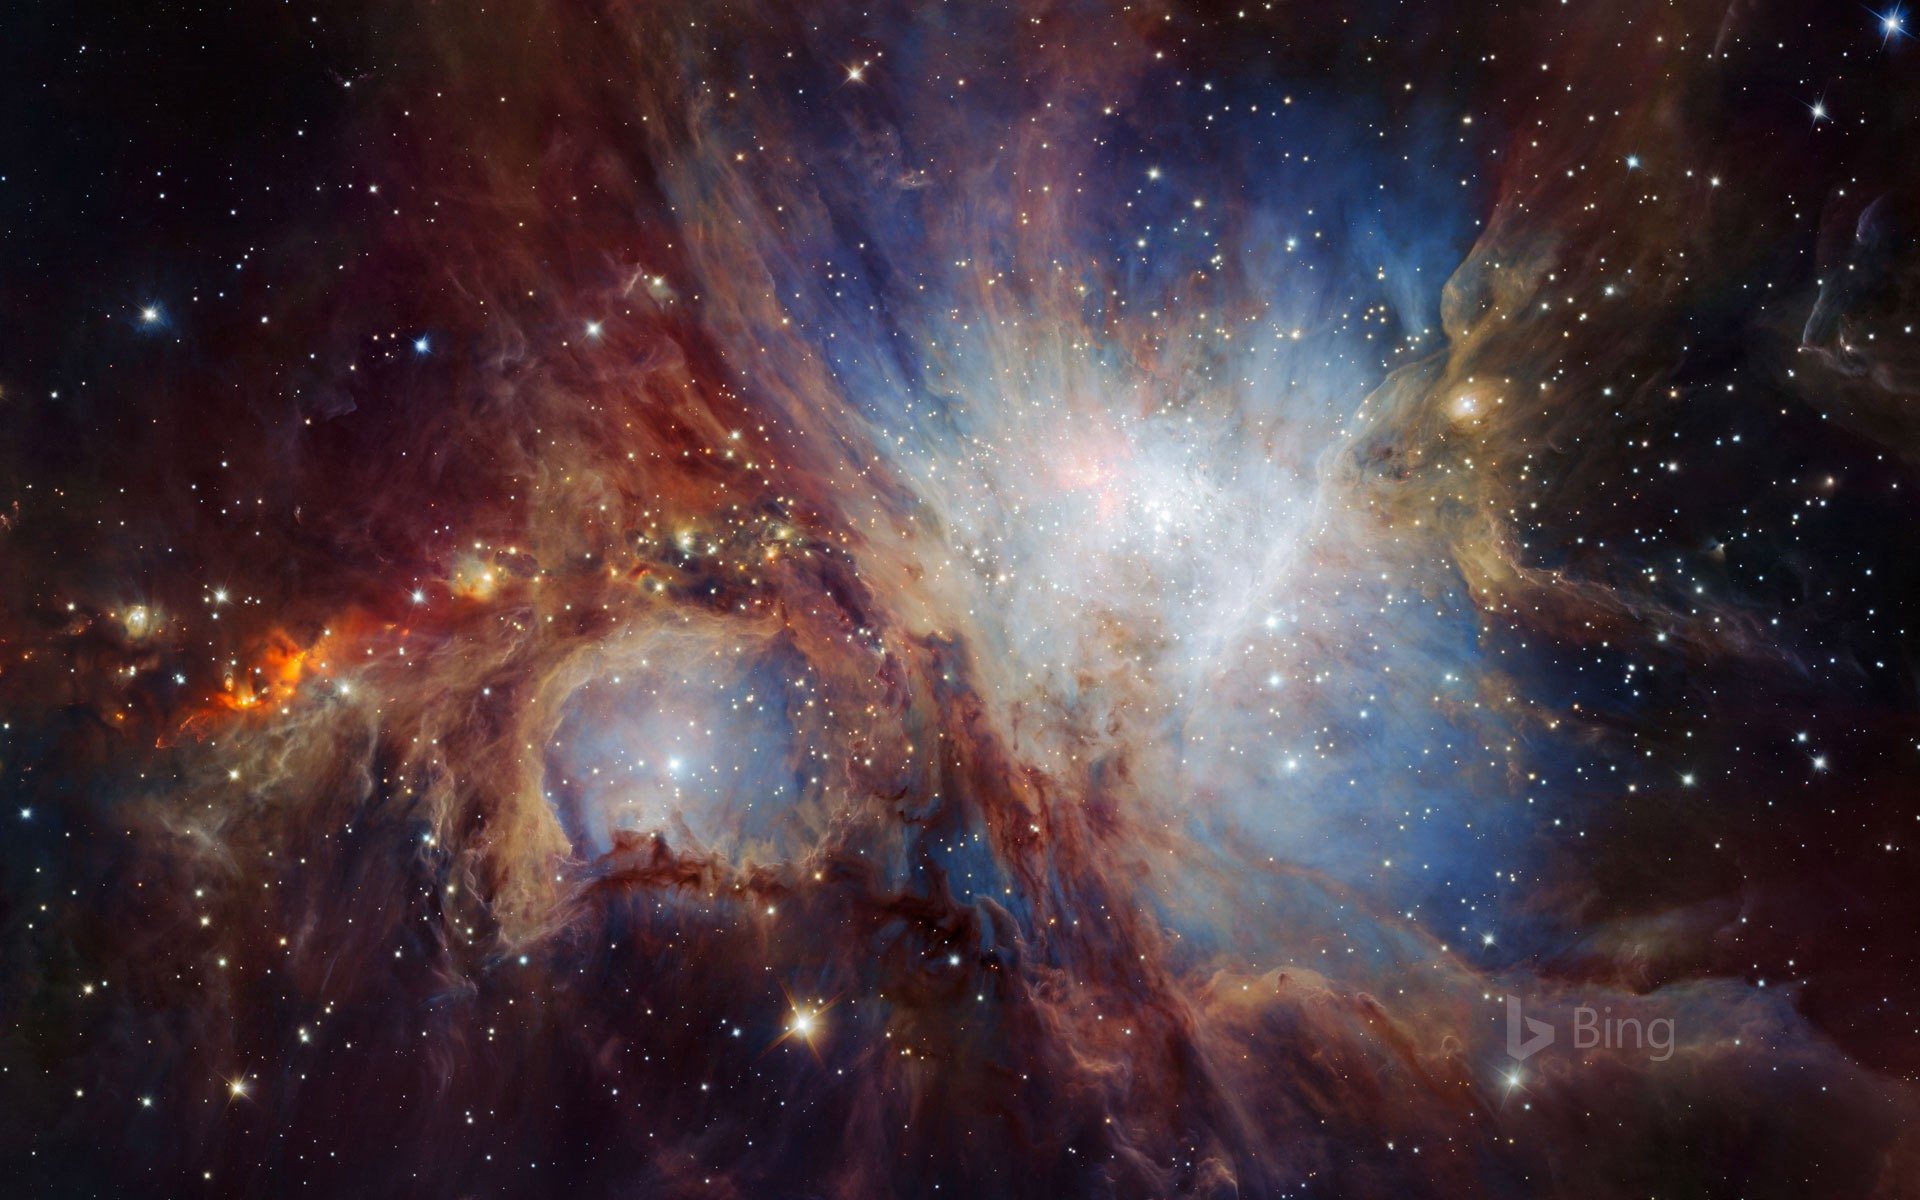 An infrared image of the Orion Nebula taken from the HAWK-I camera in Chile